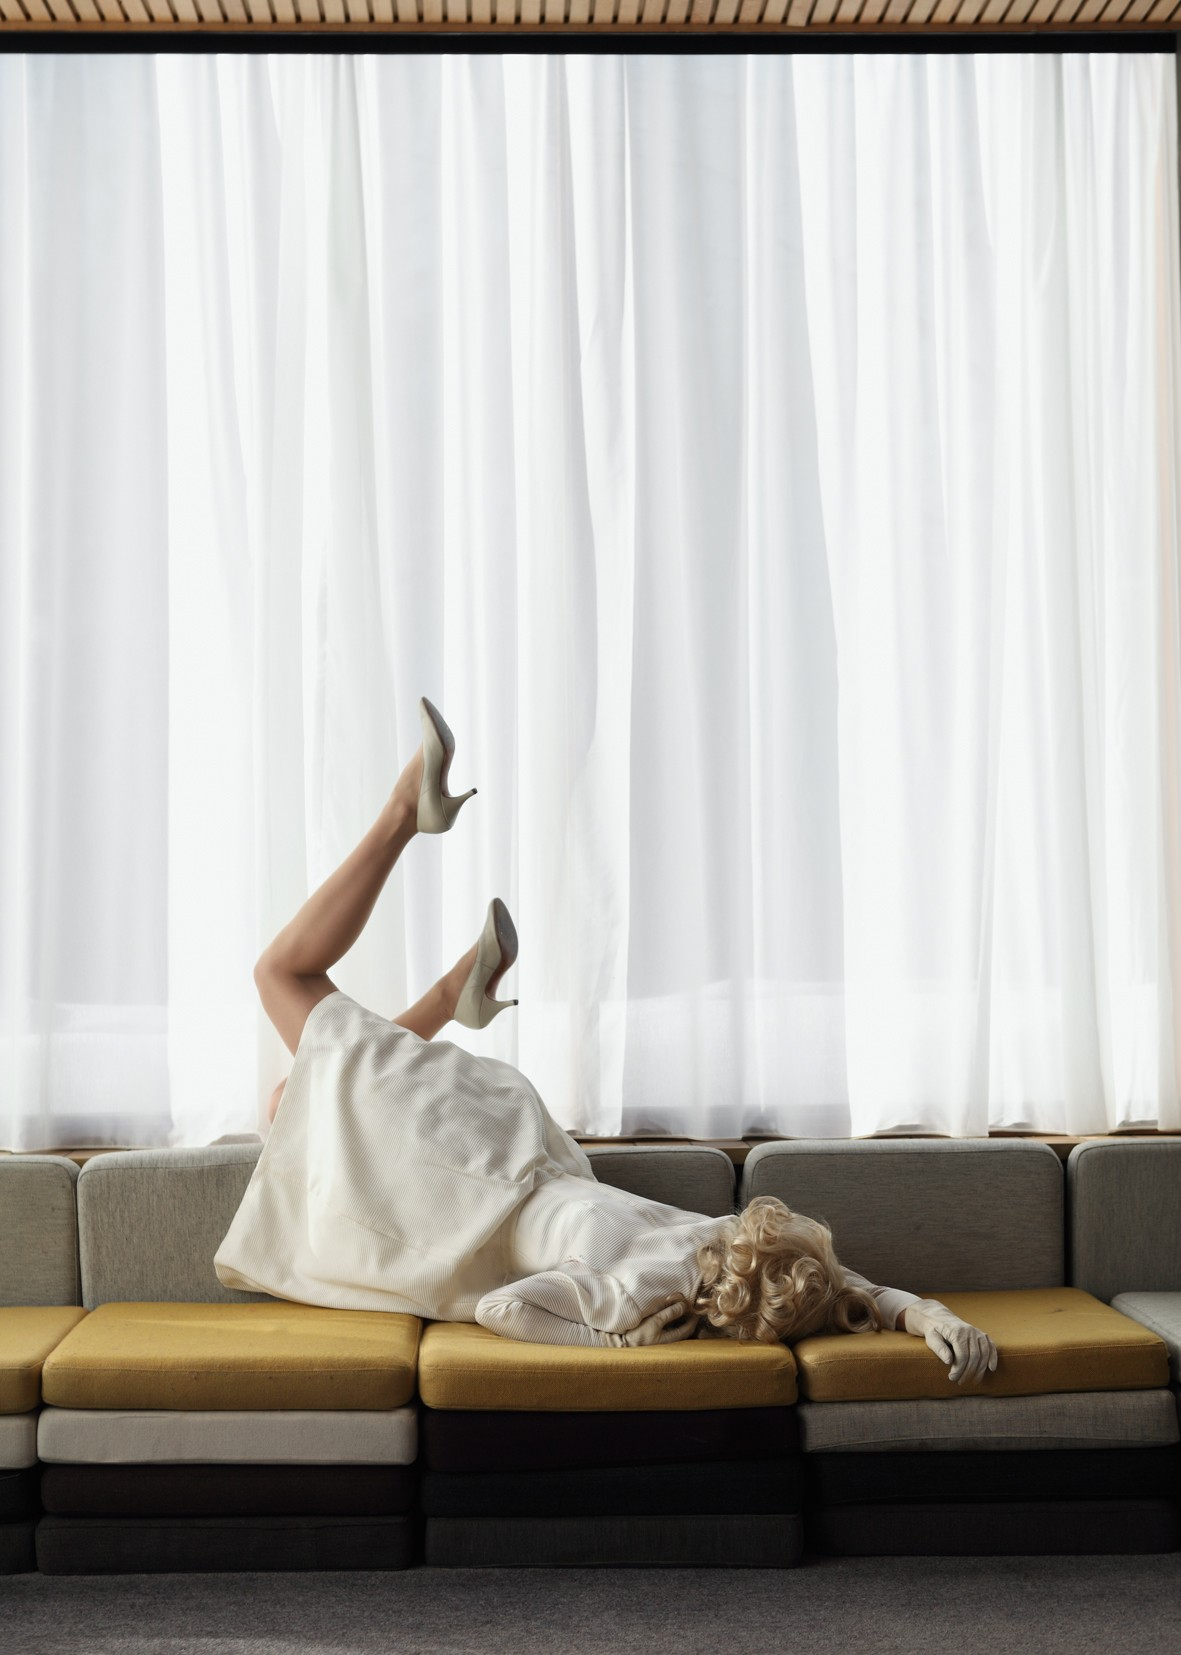 Beautiful Editorials, Do Not Disturb, The Starlets, Anja Niemi, photoshoot, culture, fashion, beauty media nz, beauty blog nz, fashion media nz, fashion blog nz, style blog nz, angie fredatovich, journalist nz, media nz, gurlinterrupted